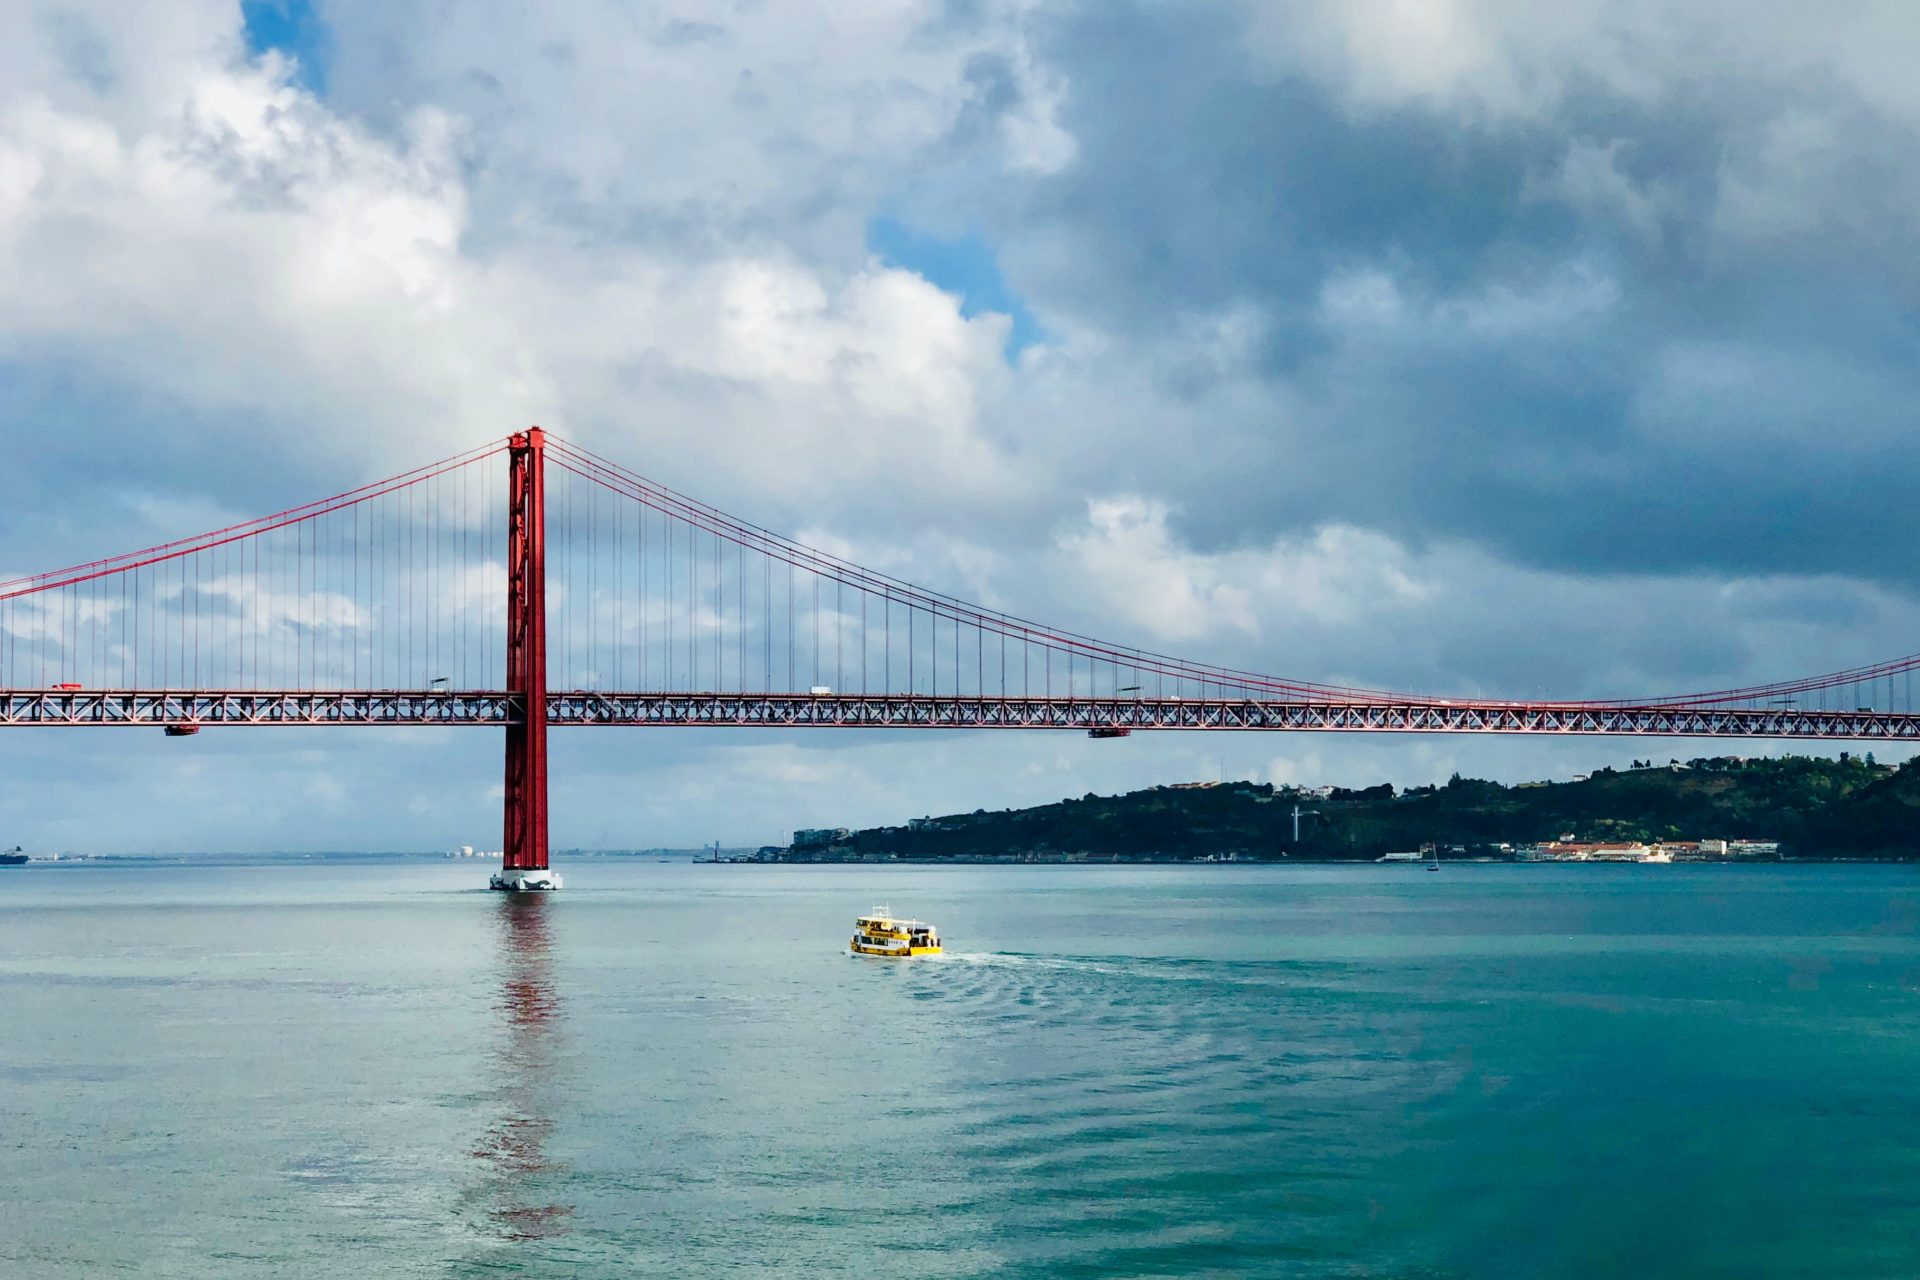 Lisbon, Portugal (Photo by Joao Tzanno on Unsplash)